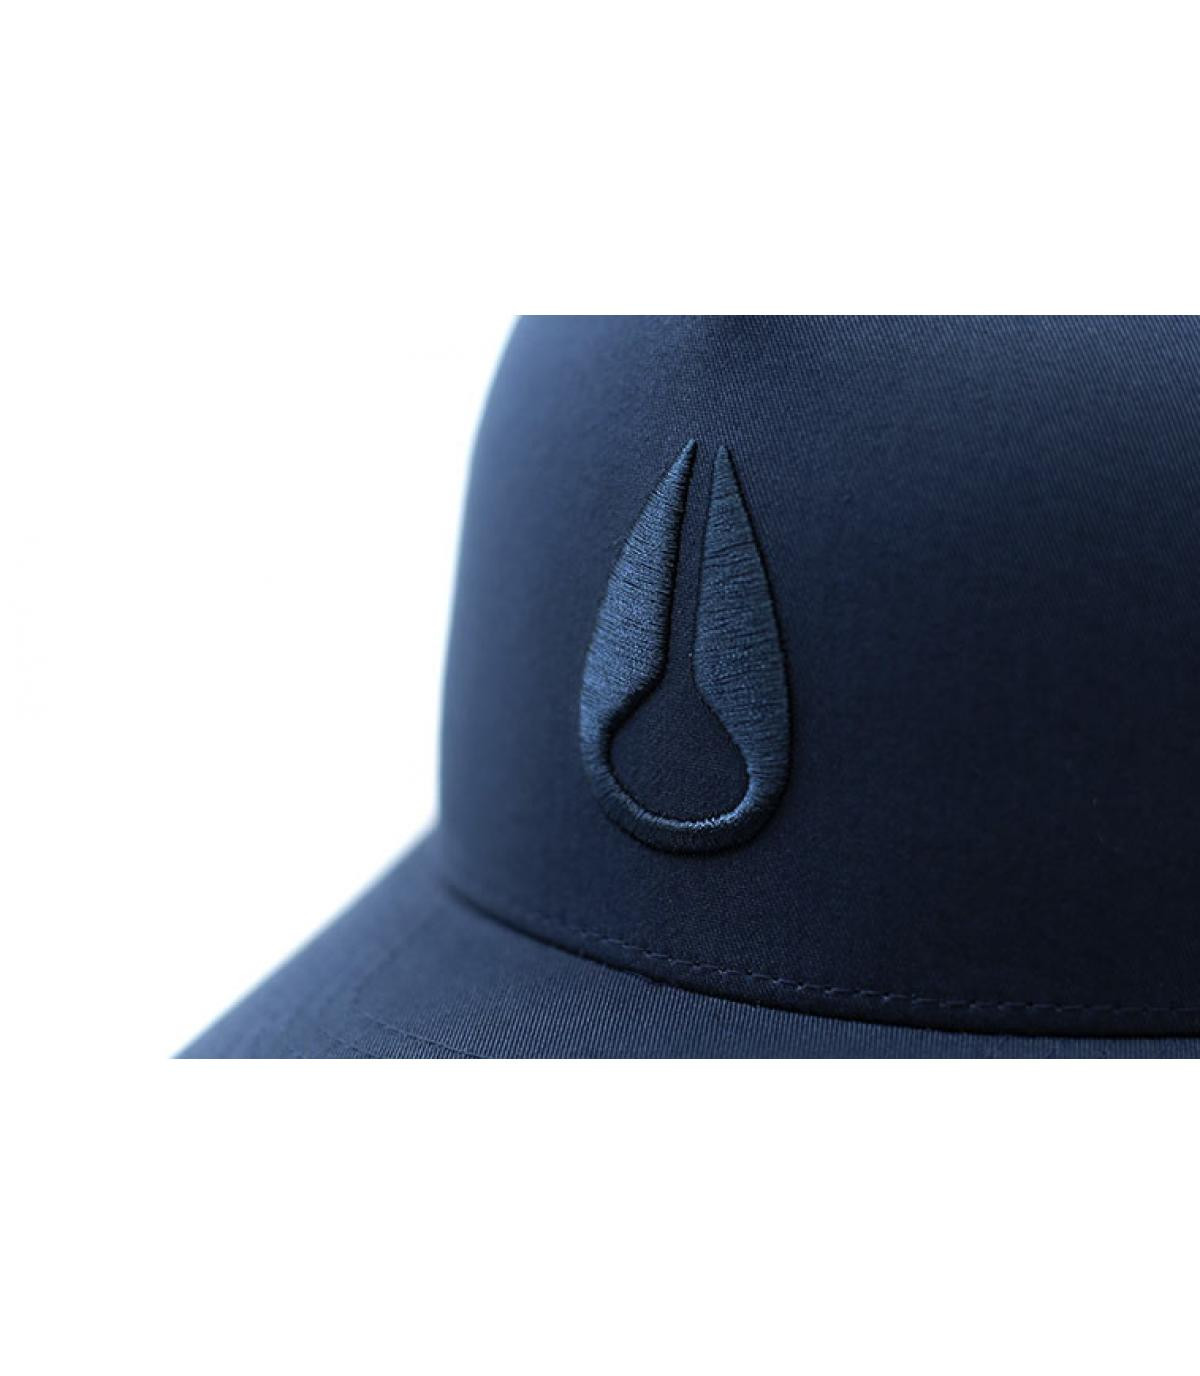 Details Iconed all navy - afbeeling 3